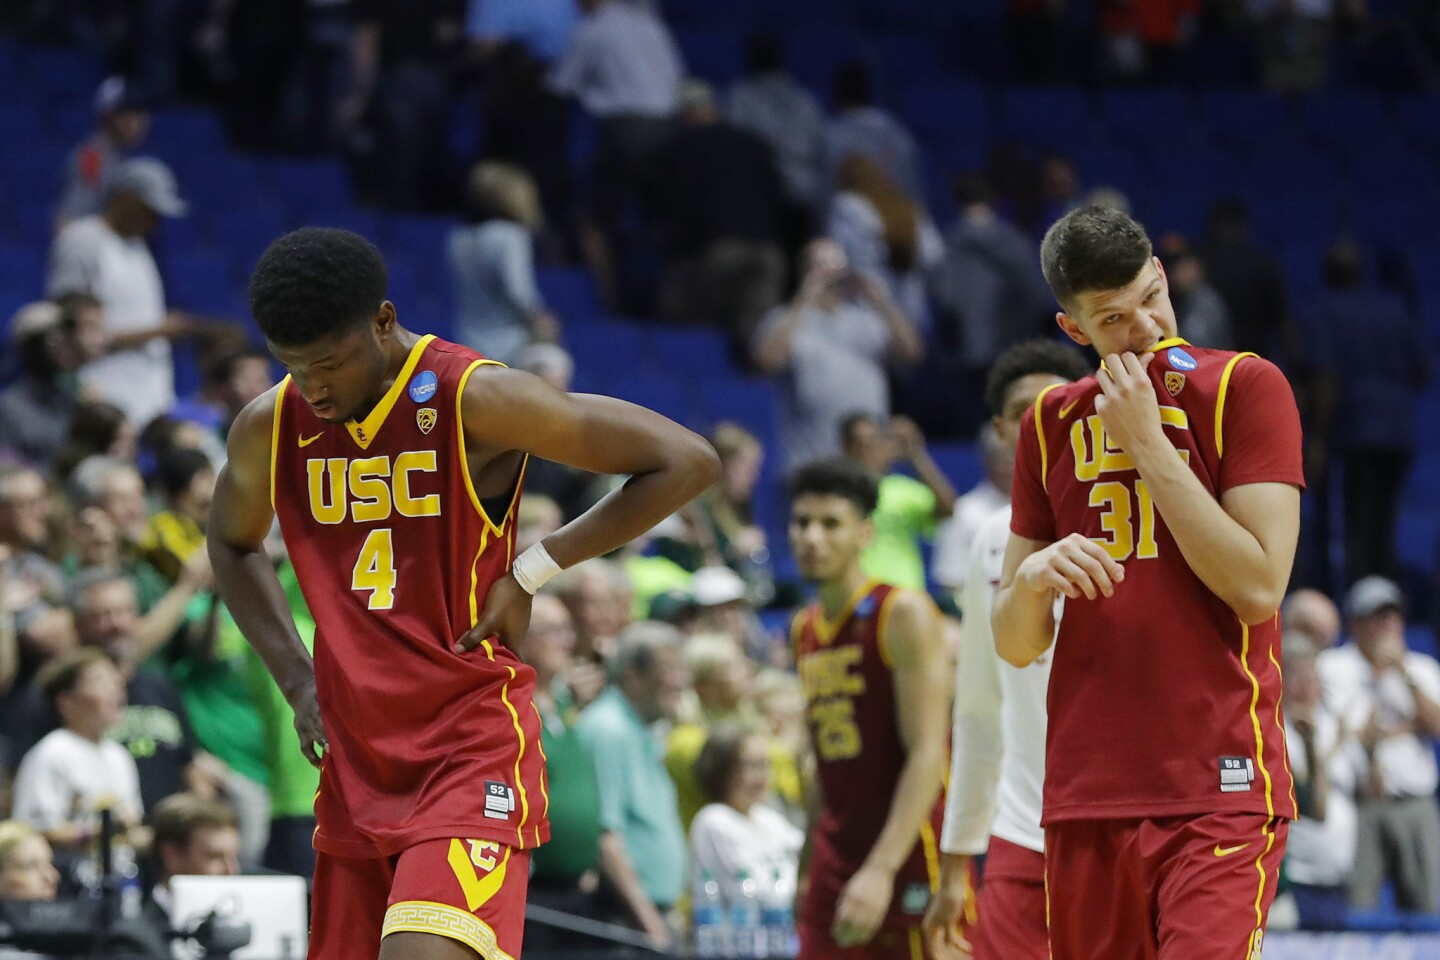 USC big men Chimezie Metu (4) and Nick Rakocevic (31) leave the court after their 82-78 loss to Baylor in an NCAA tournament second-round game Sunday.